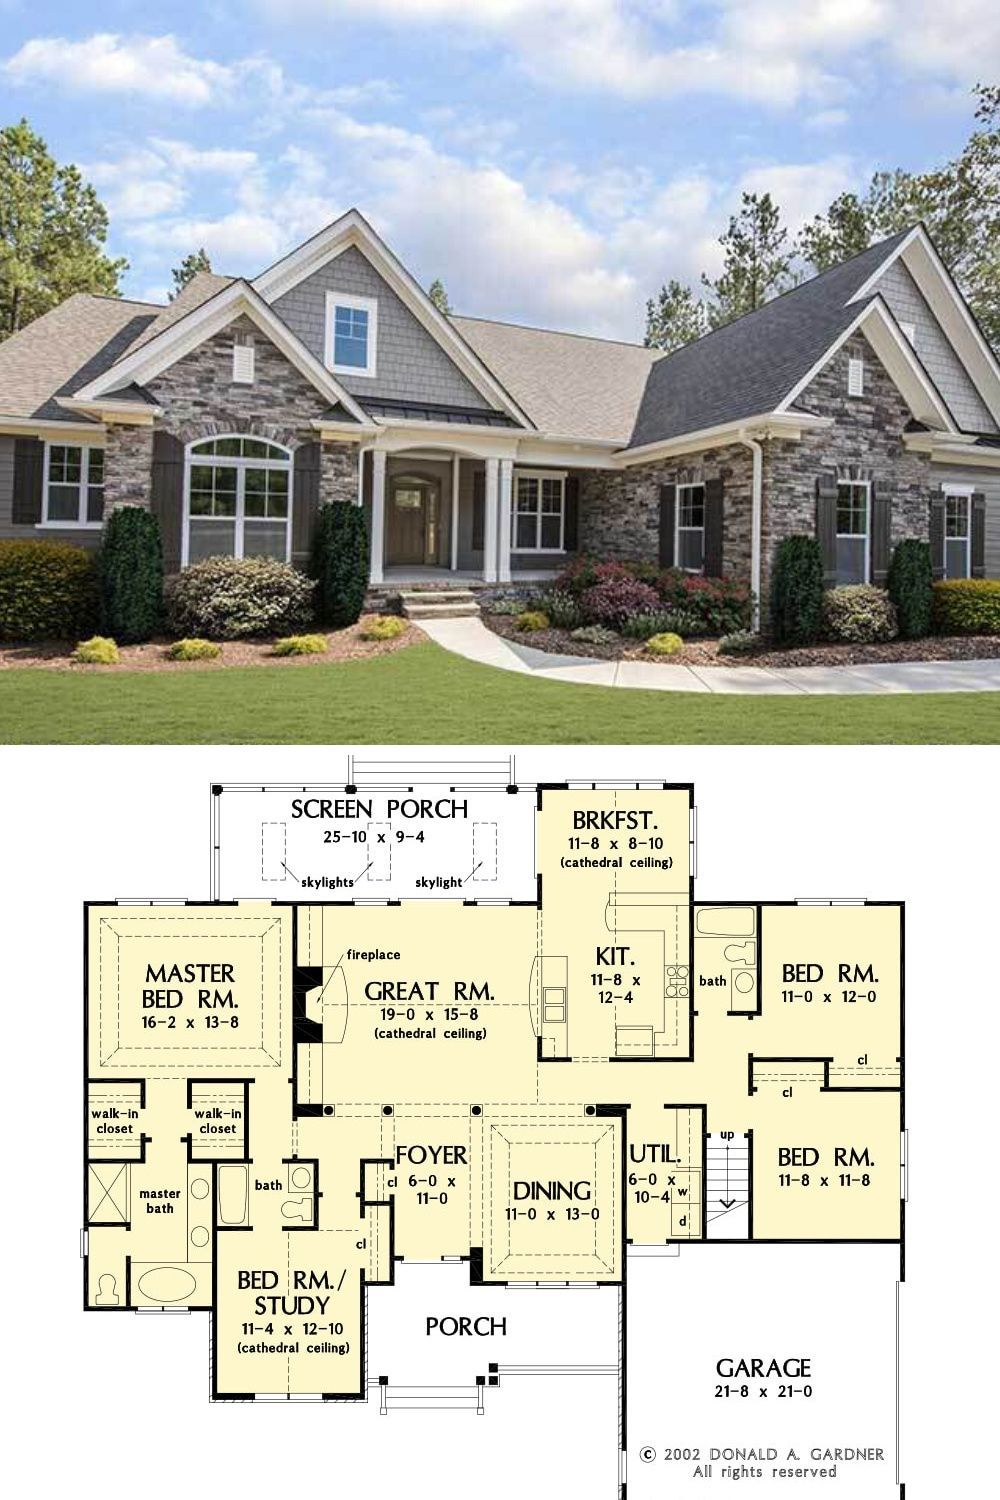 Single Story Traditional 3 Bedroom The Satchwell Home Floor Plan Craftsman Style House Plans Open House Plans House Plans Farmhouse